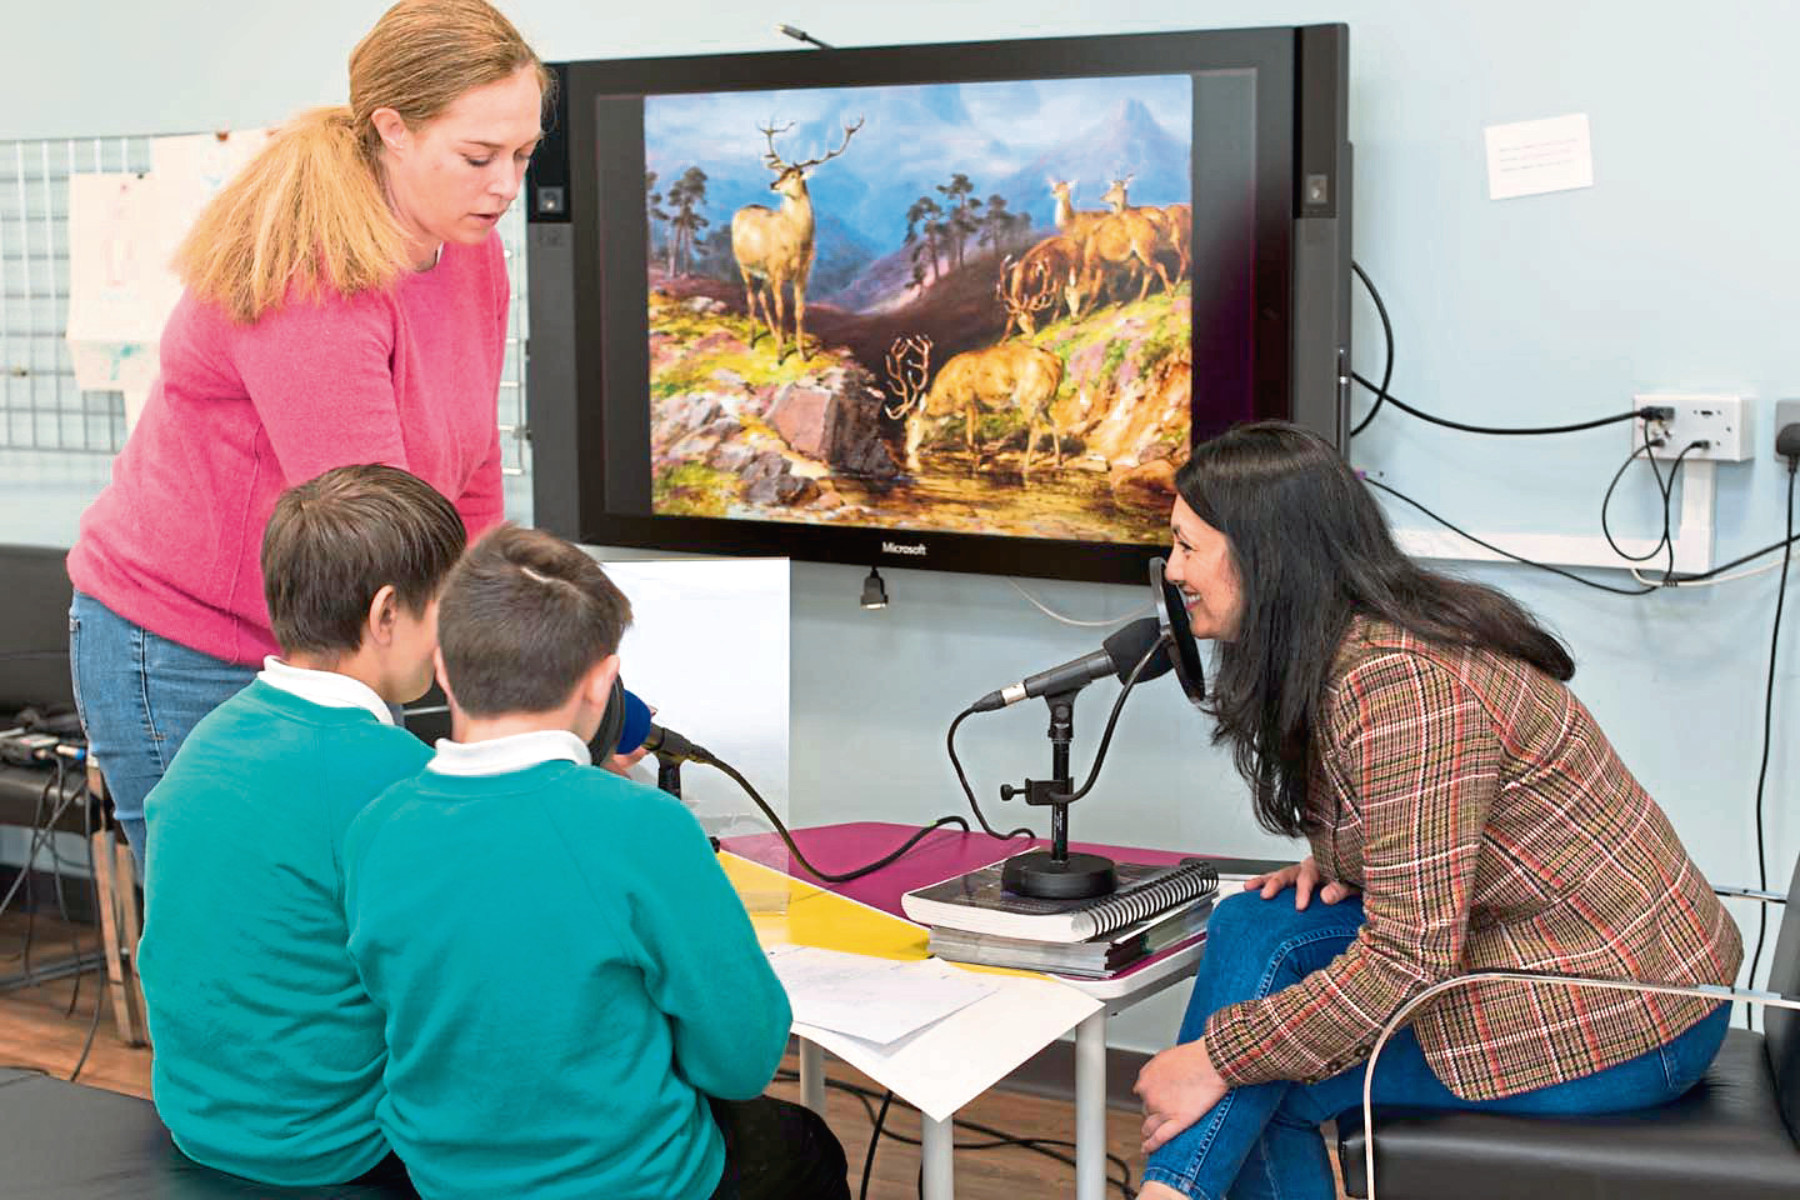 Audio producer Erin Macguire, Rachel Thibbotumunuwe, Aberdeen Art Gallery learning manager and pupils from Manor Park Primary School